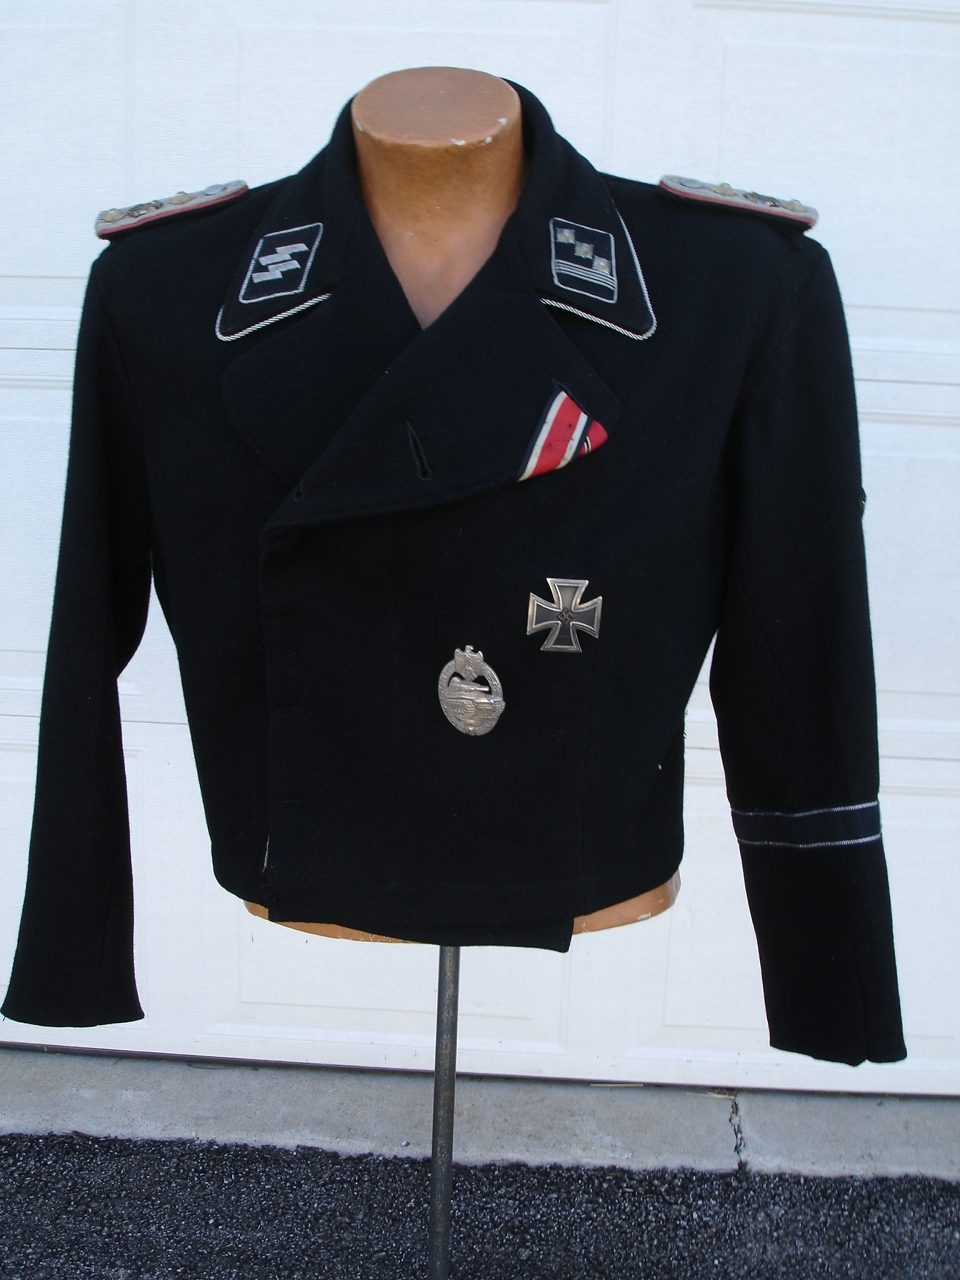 WAFFEN SS PANZER OFFICER TUNIC LEIBSTANDARTE WRAP UNIFORM